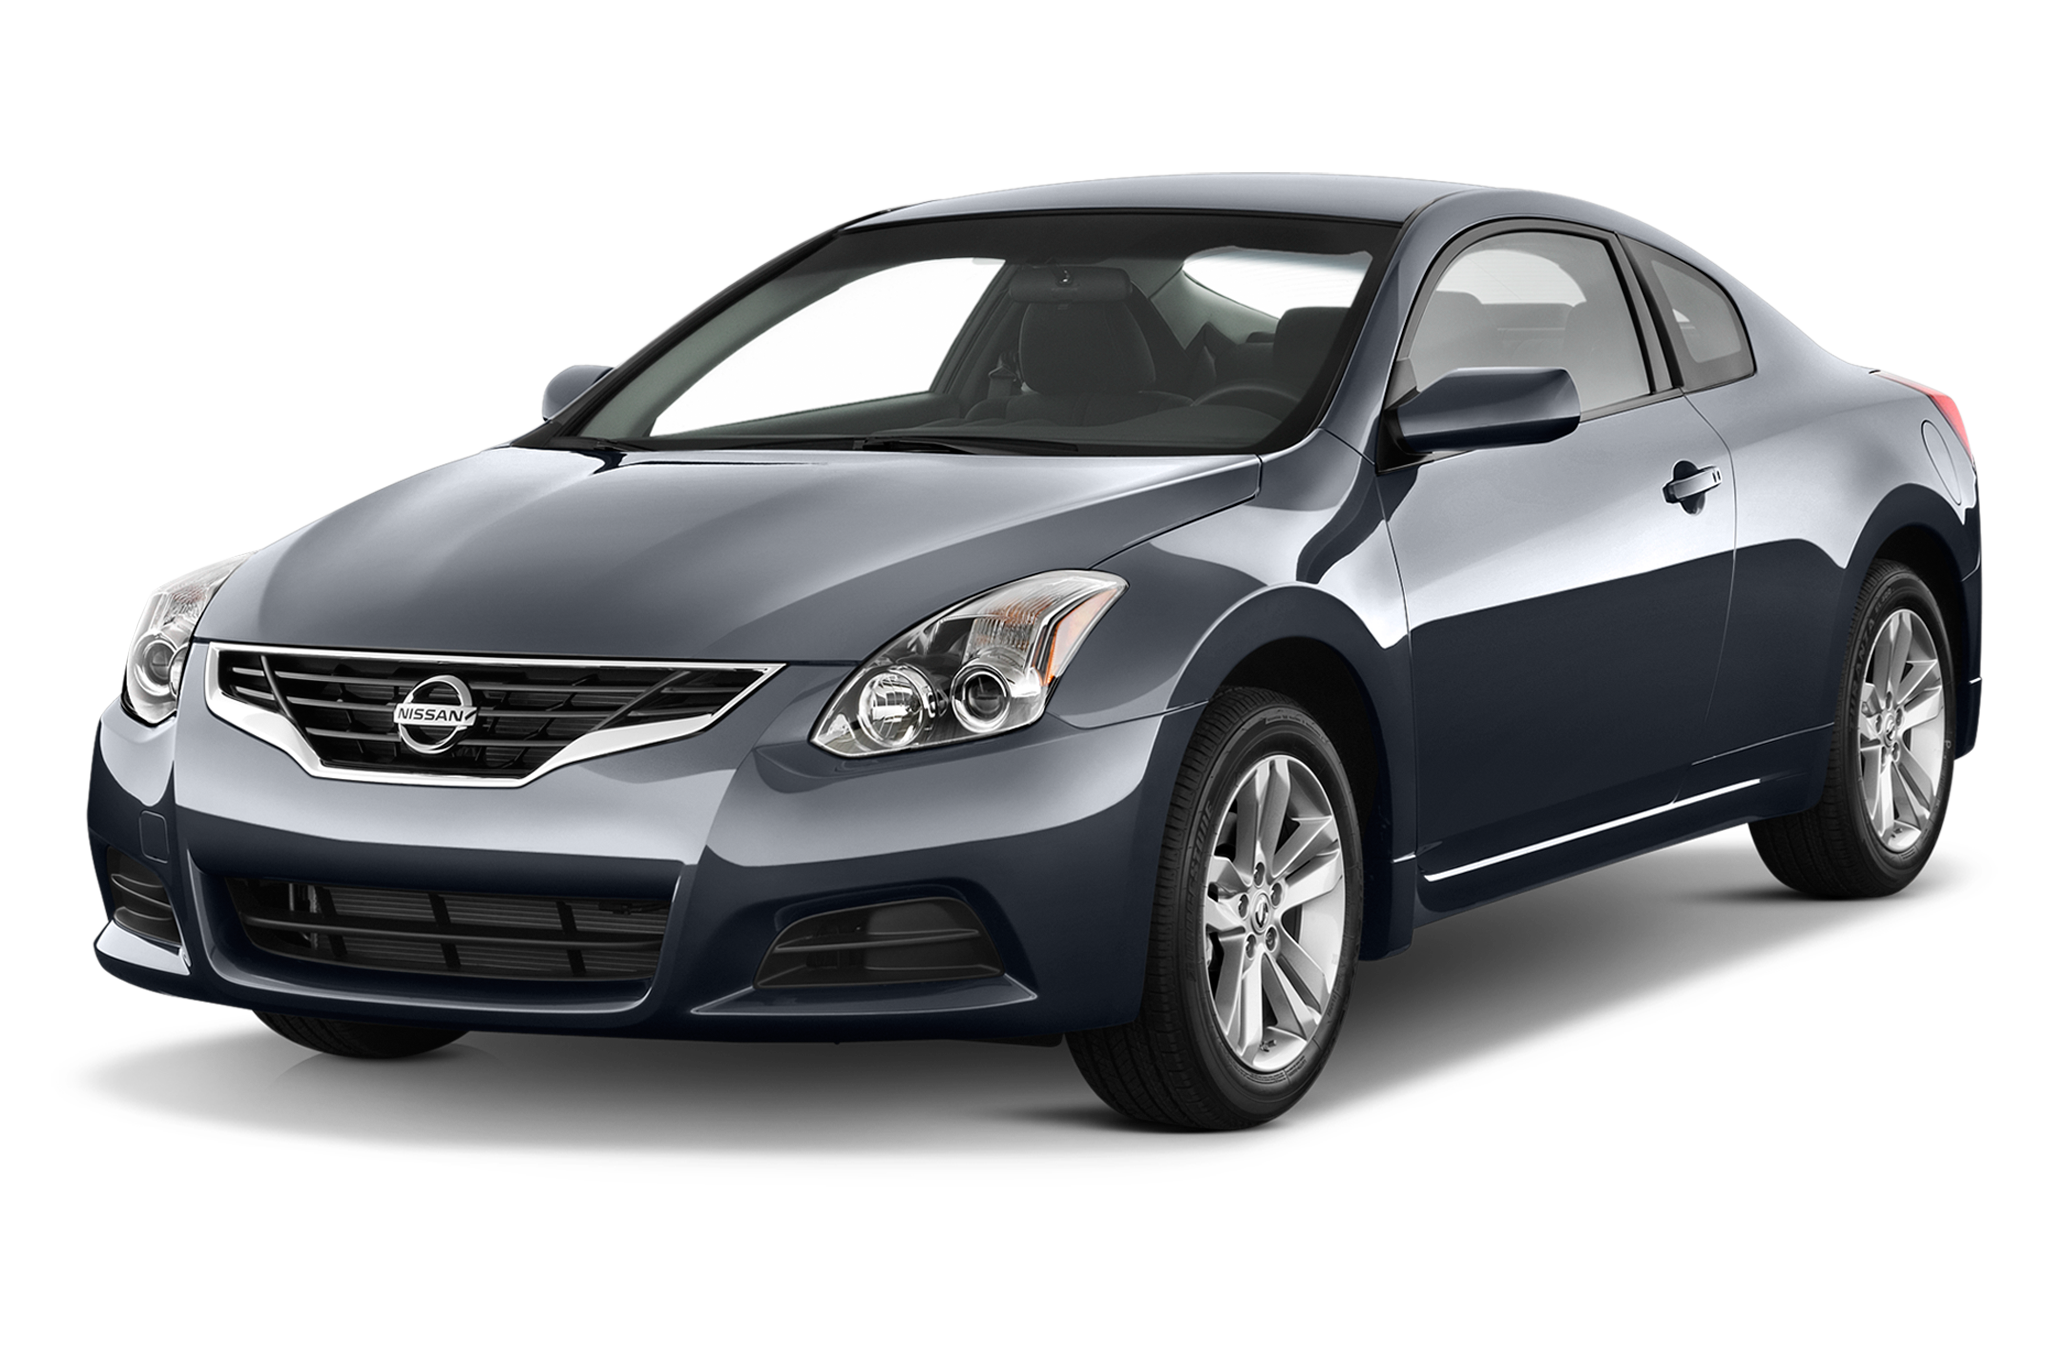 2012 Nissan Altima Reviews and Rating